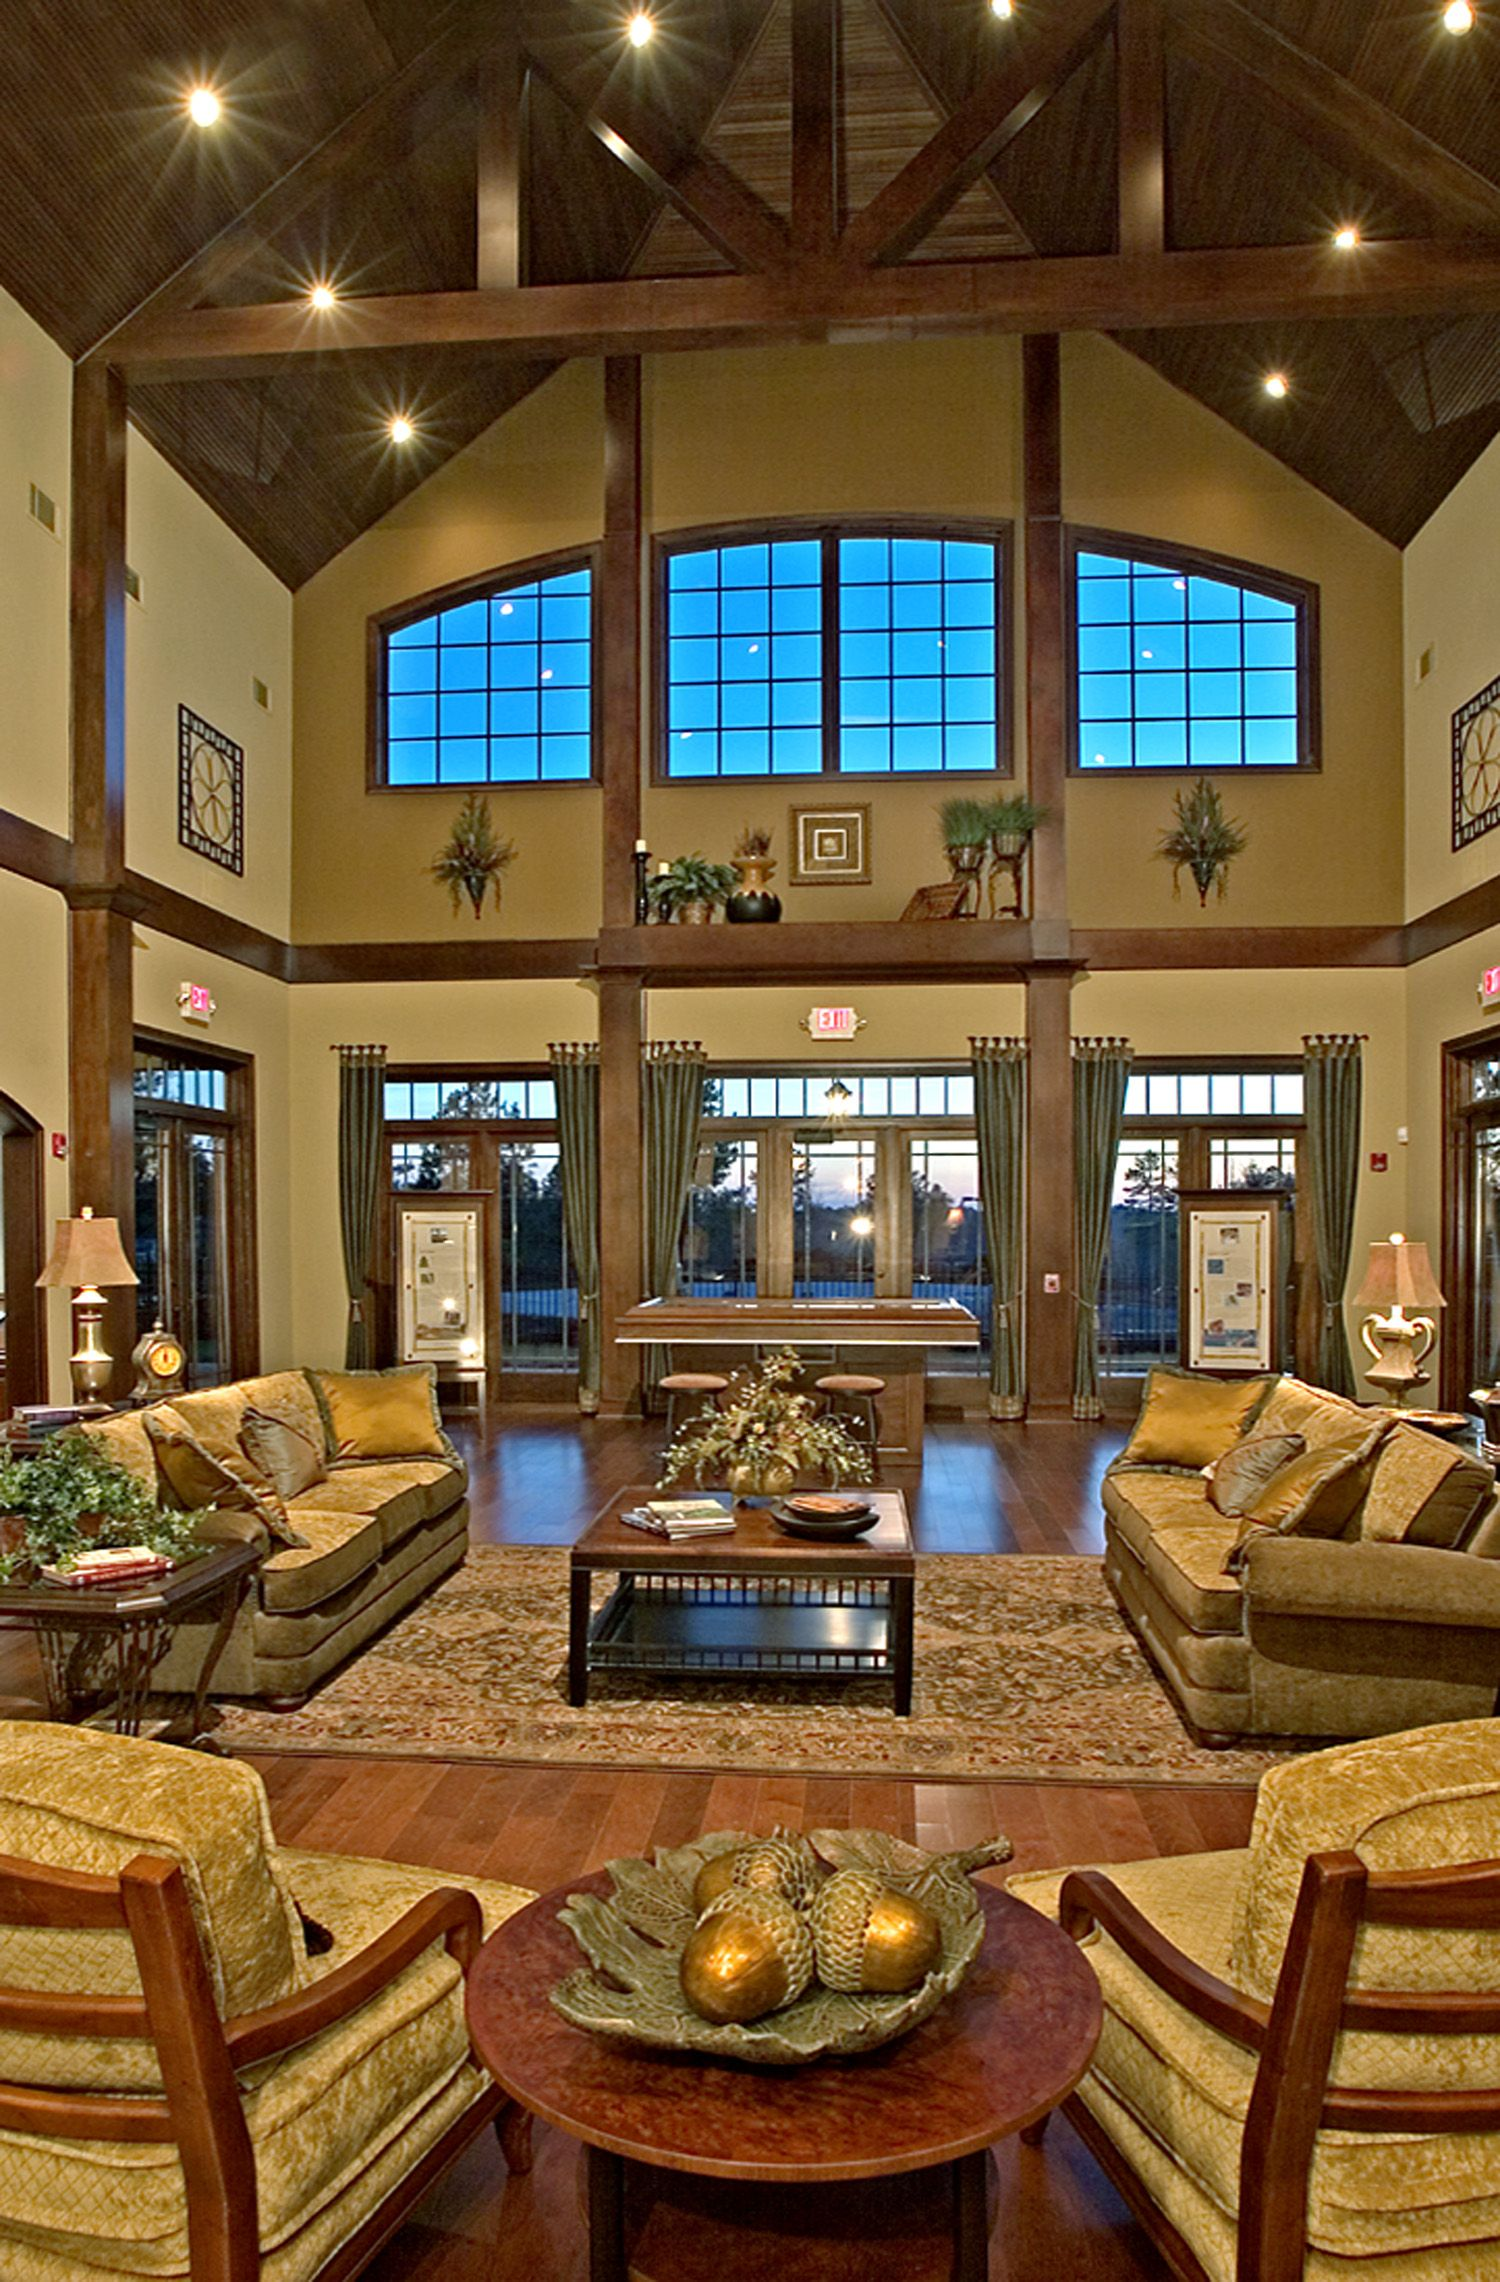 club golf interior atlanta clubhouses interiors homes clubhouse communities community visit houses ceiling